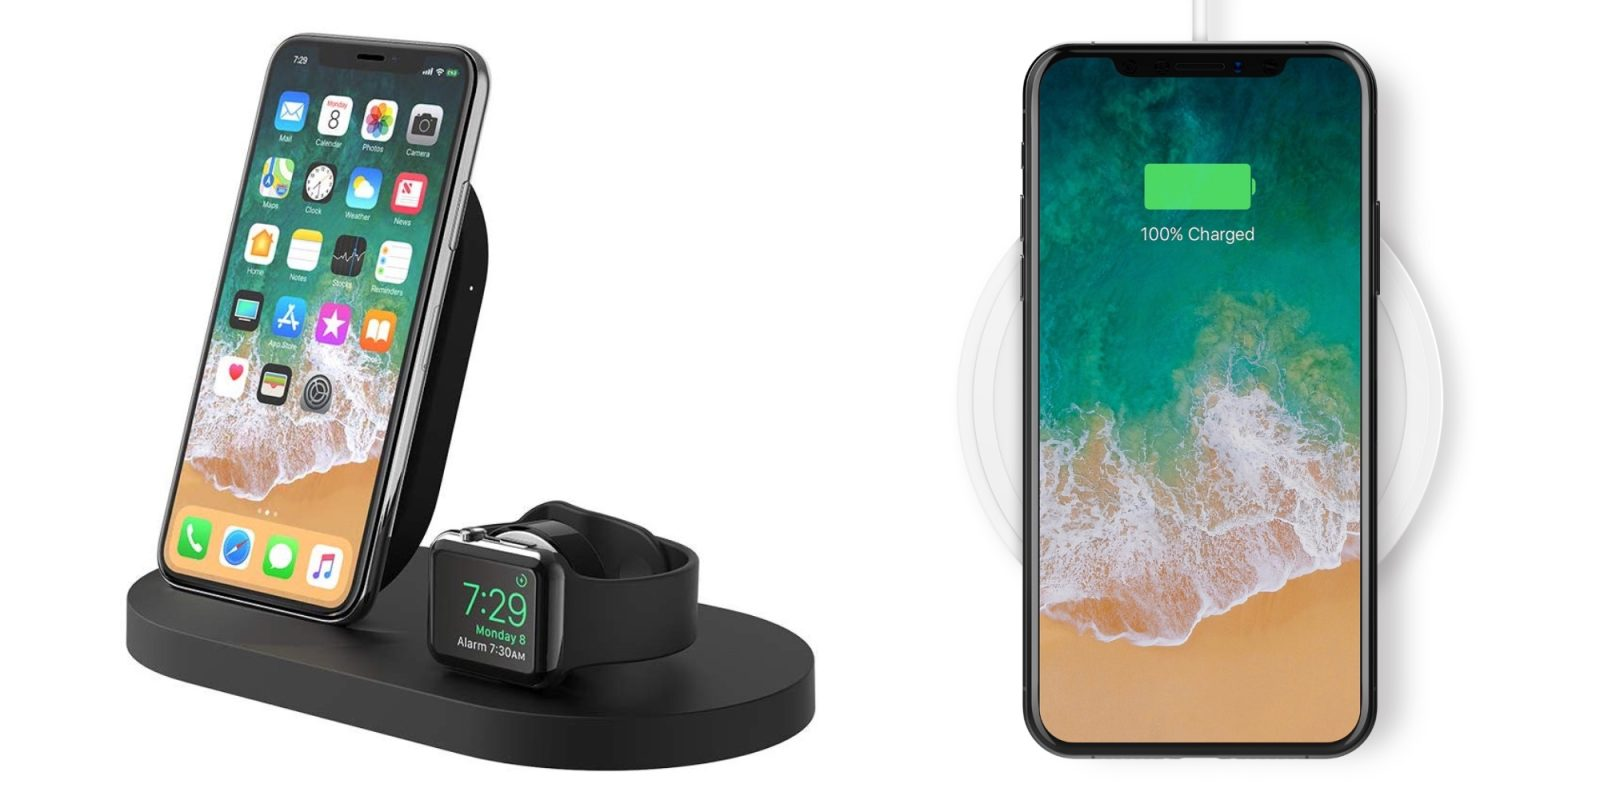 Save 25% on Belkin's collection of iPhone charging docks, cables, and more